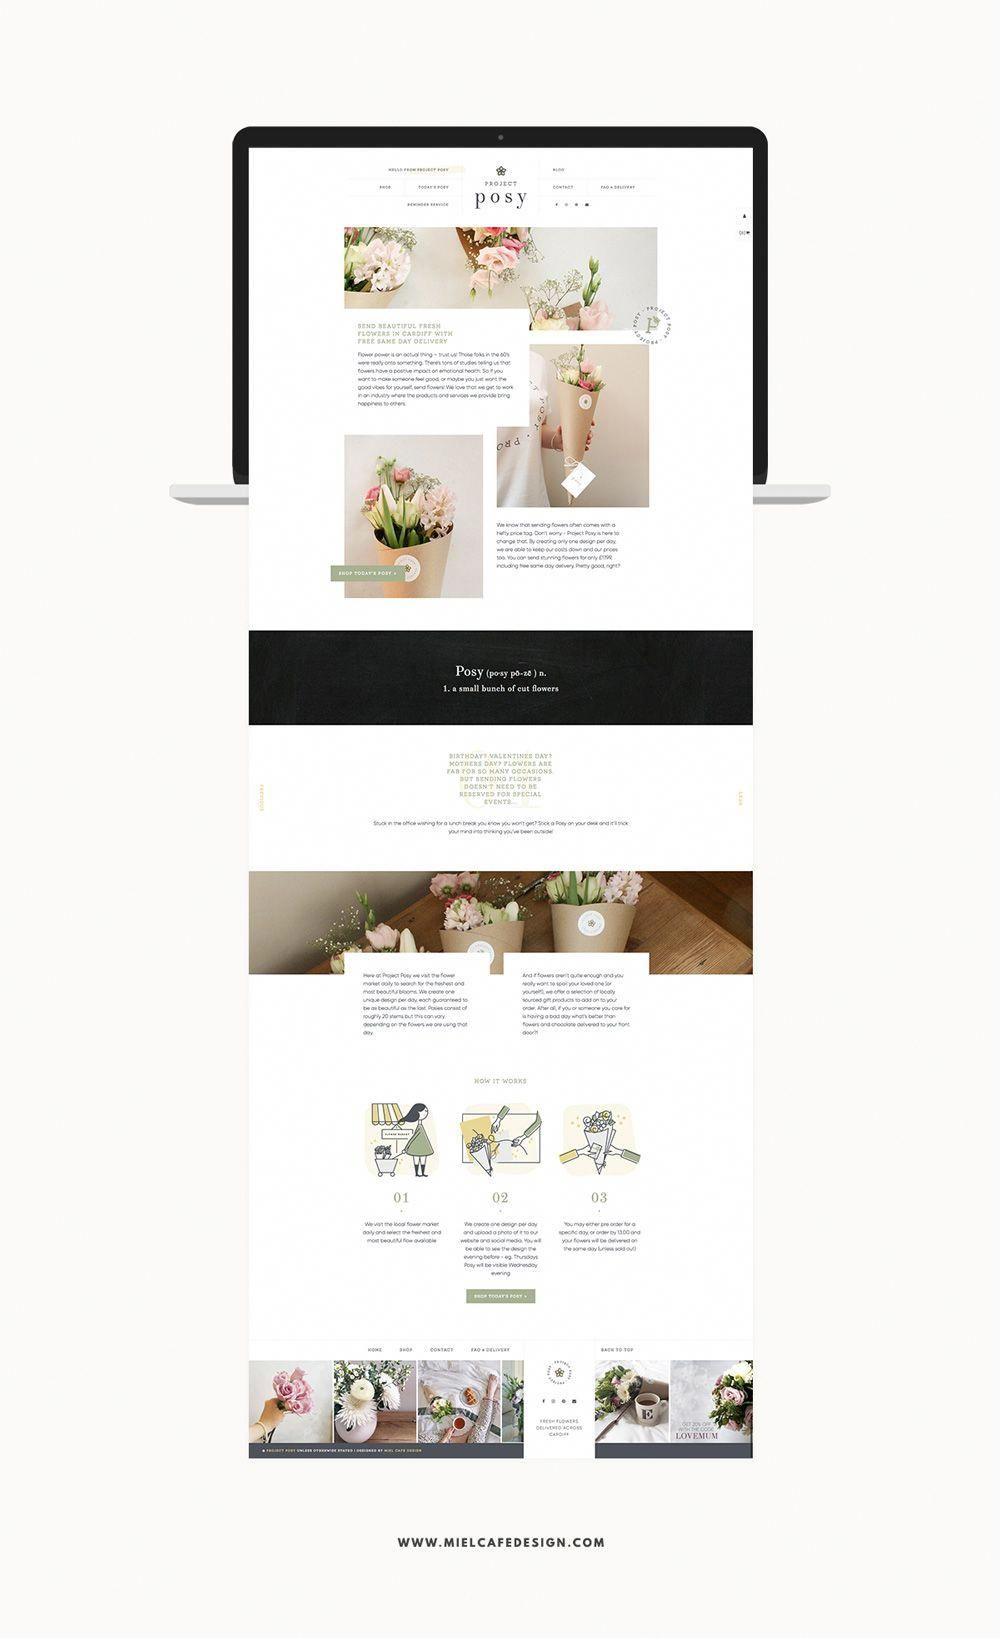 Custom Web Design For Cardiff Flower Delivery Service Project Posy With Fun Handmade Digital Icons Cha Custom Web Design Flower Delivery Portfolio Web Design